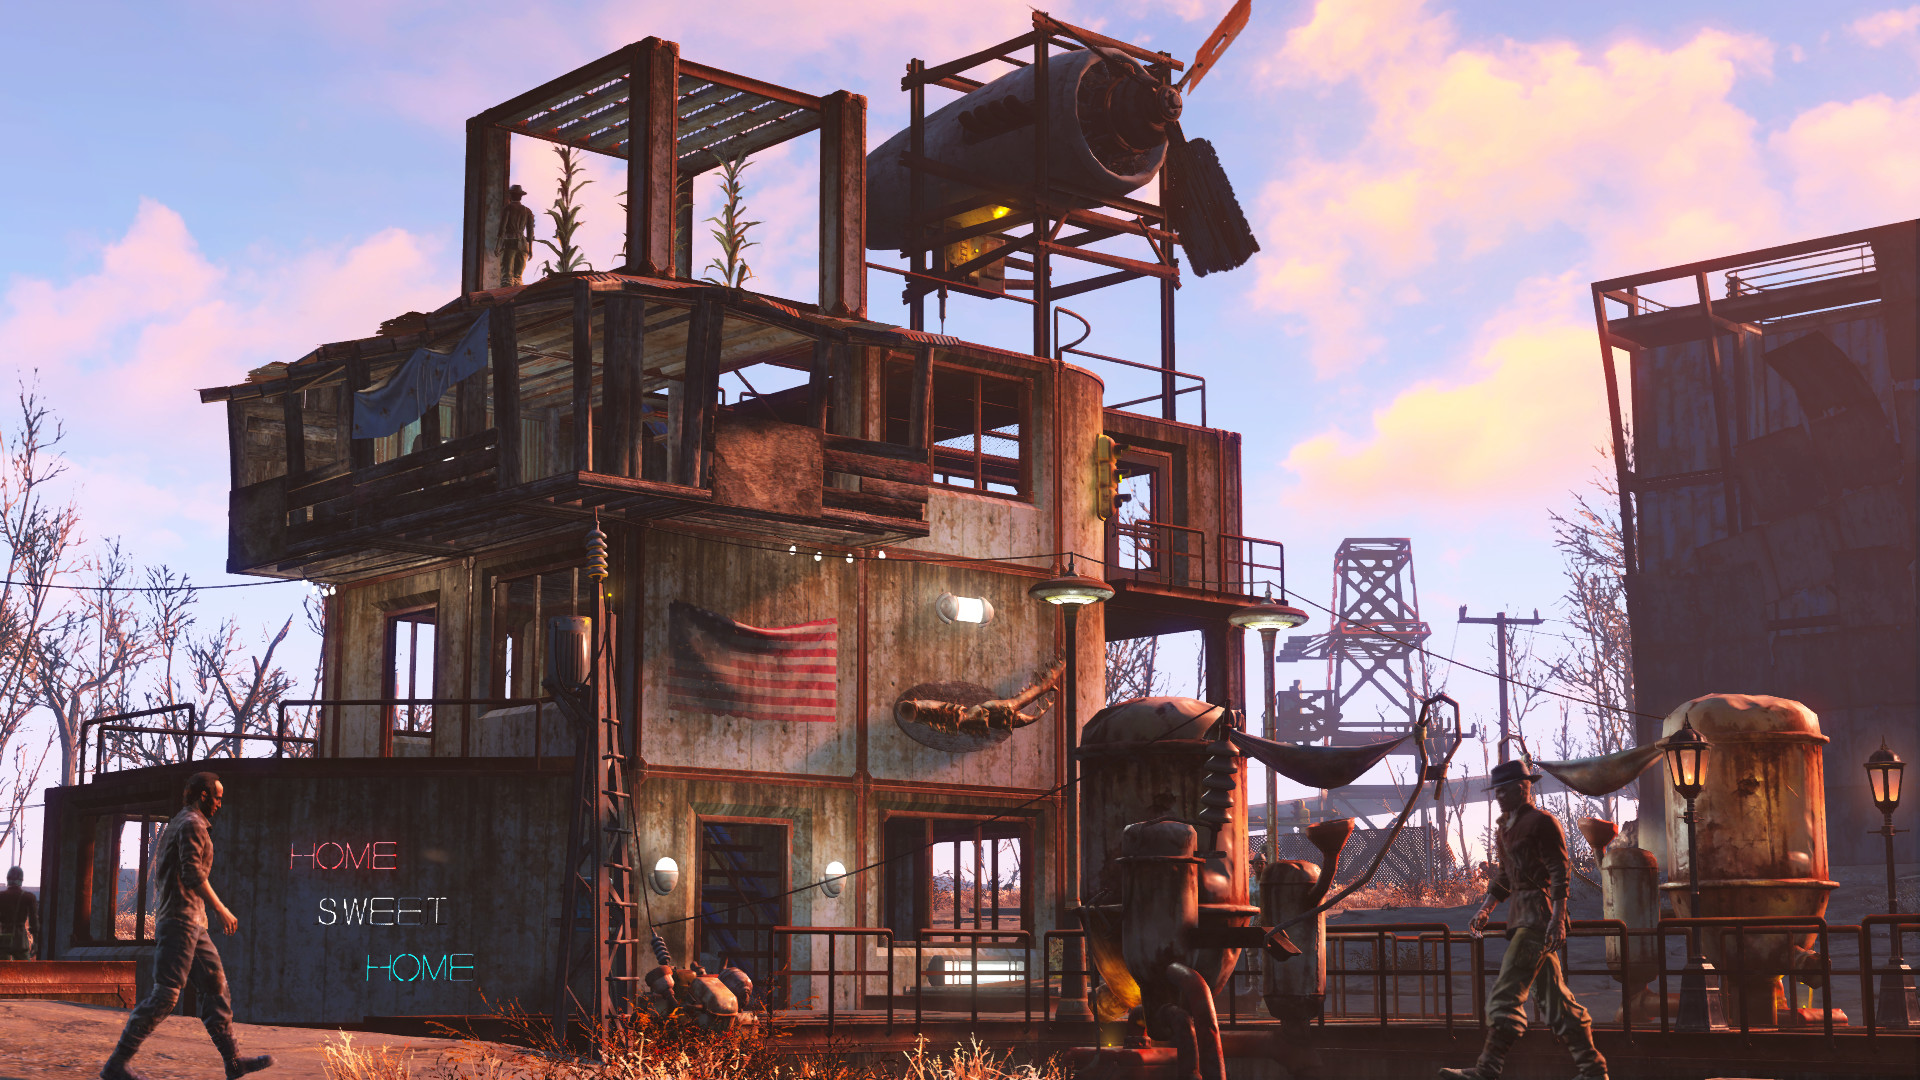 Fallout 4 wasteland workshop guide how to build arenas and get fallout 4 wasteland workshop guide how to build arenas and get your settlers to fight player solutioingenieria Image collections